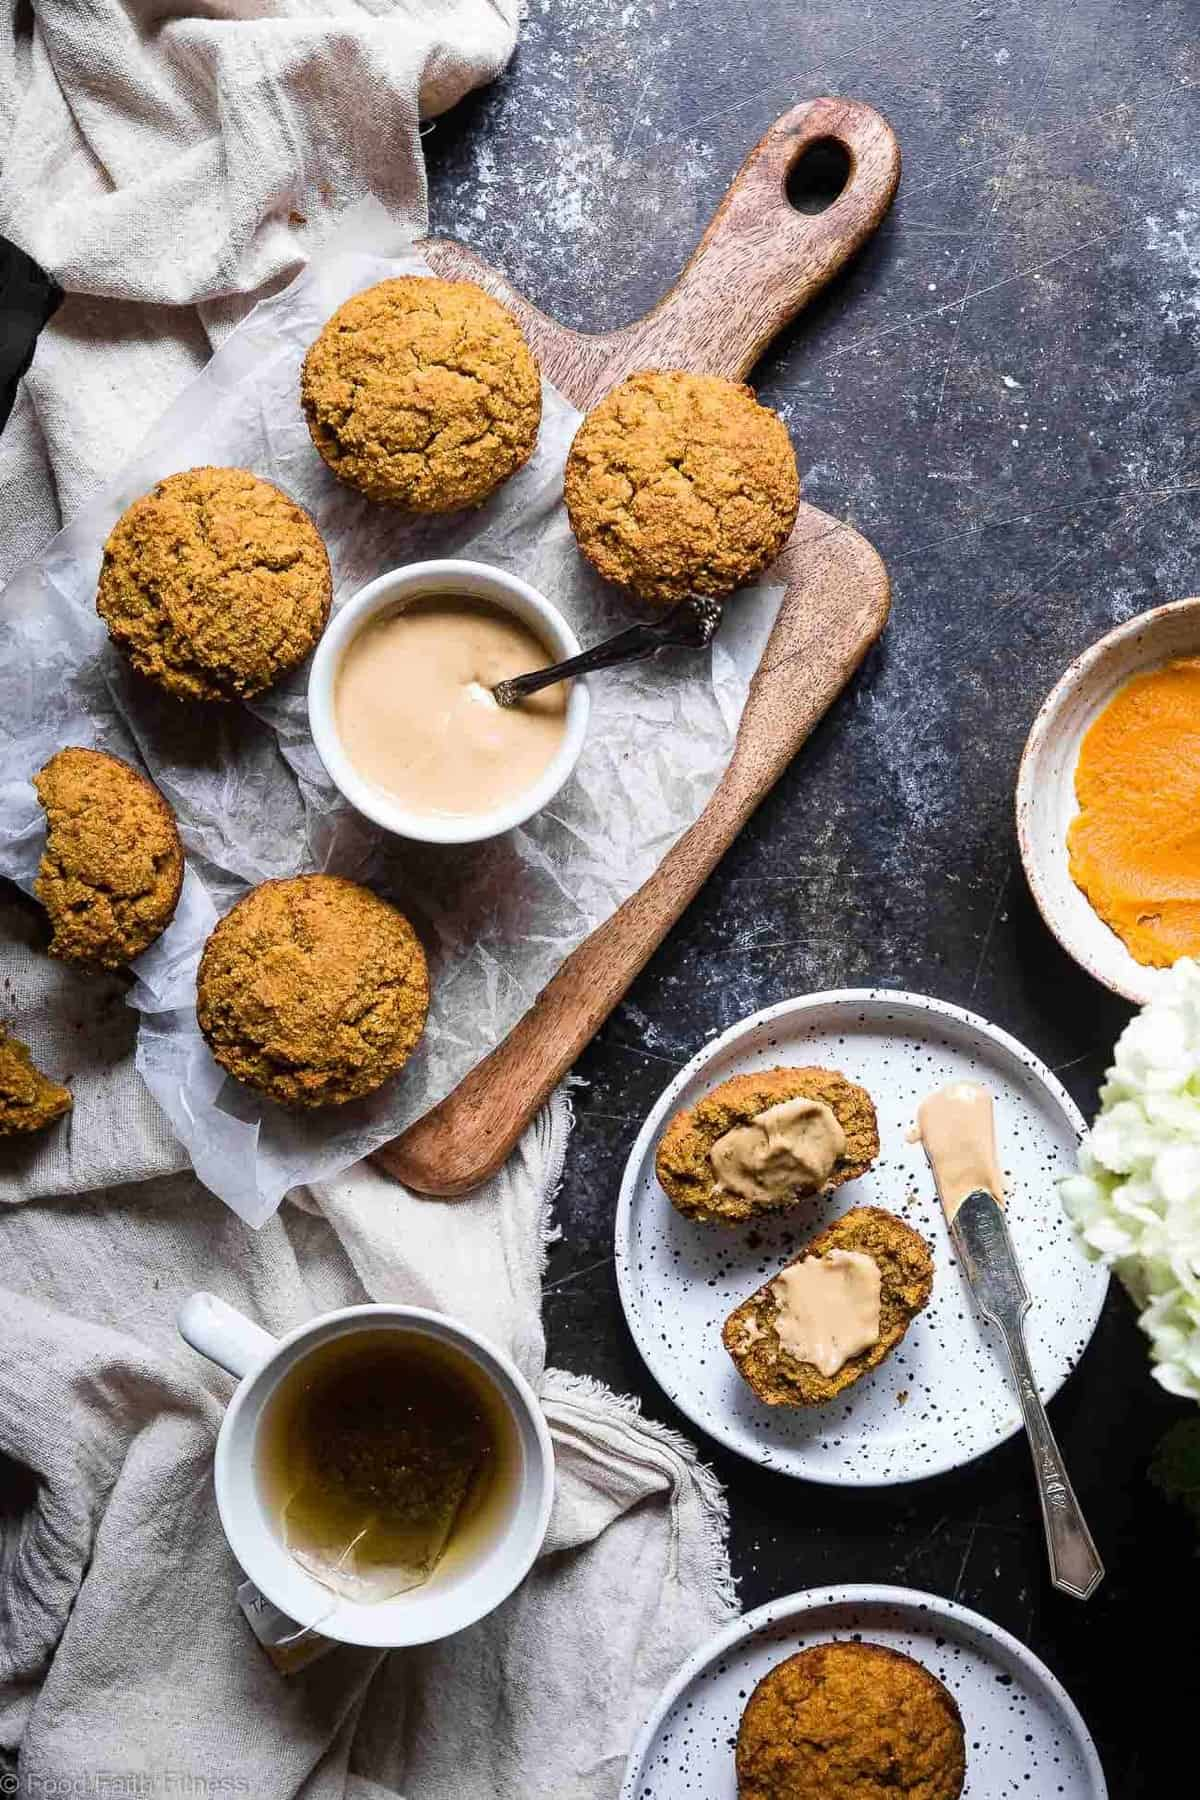 Gluten Free Paleo Pumpkin Muffins with Almond Flour - These quick and easy, healthy almond flour pumpkin muffins are SO spicy-sweet and FLUFFY! A yummy, fall breakfast or snack that kids or adults will LOVE! | #Foodfaithfitness | #Glutenfree #Paleo #Healthy #Pumpkin #Muffins